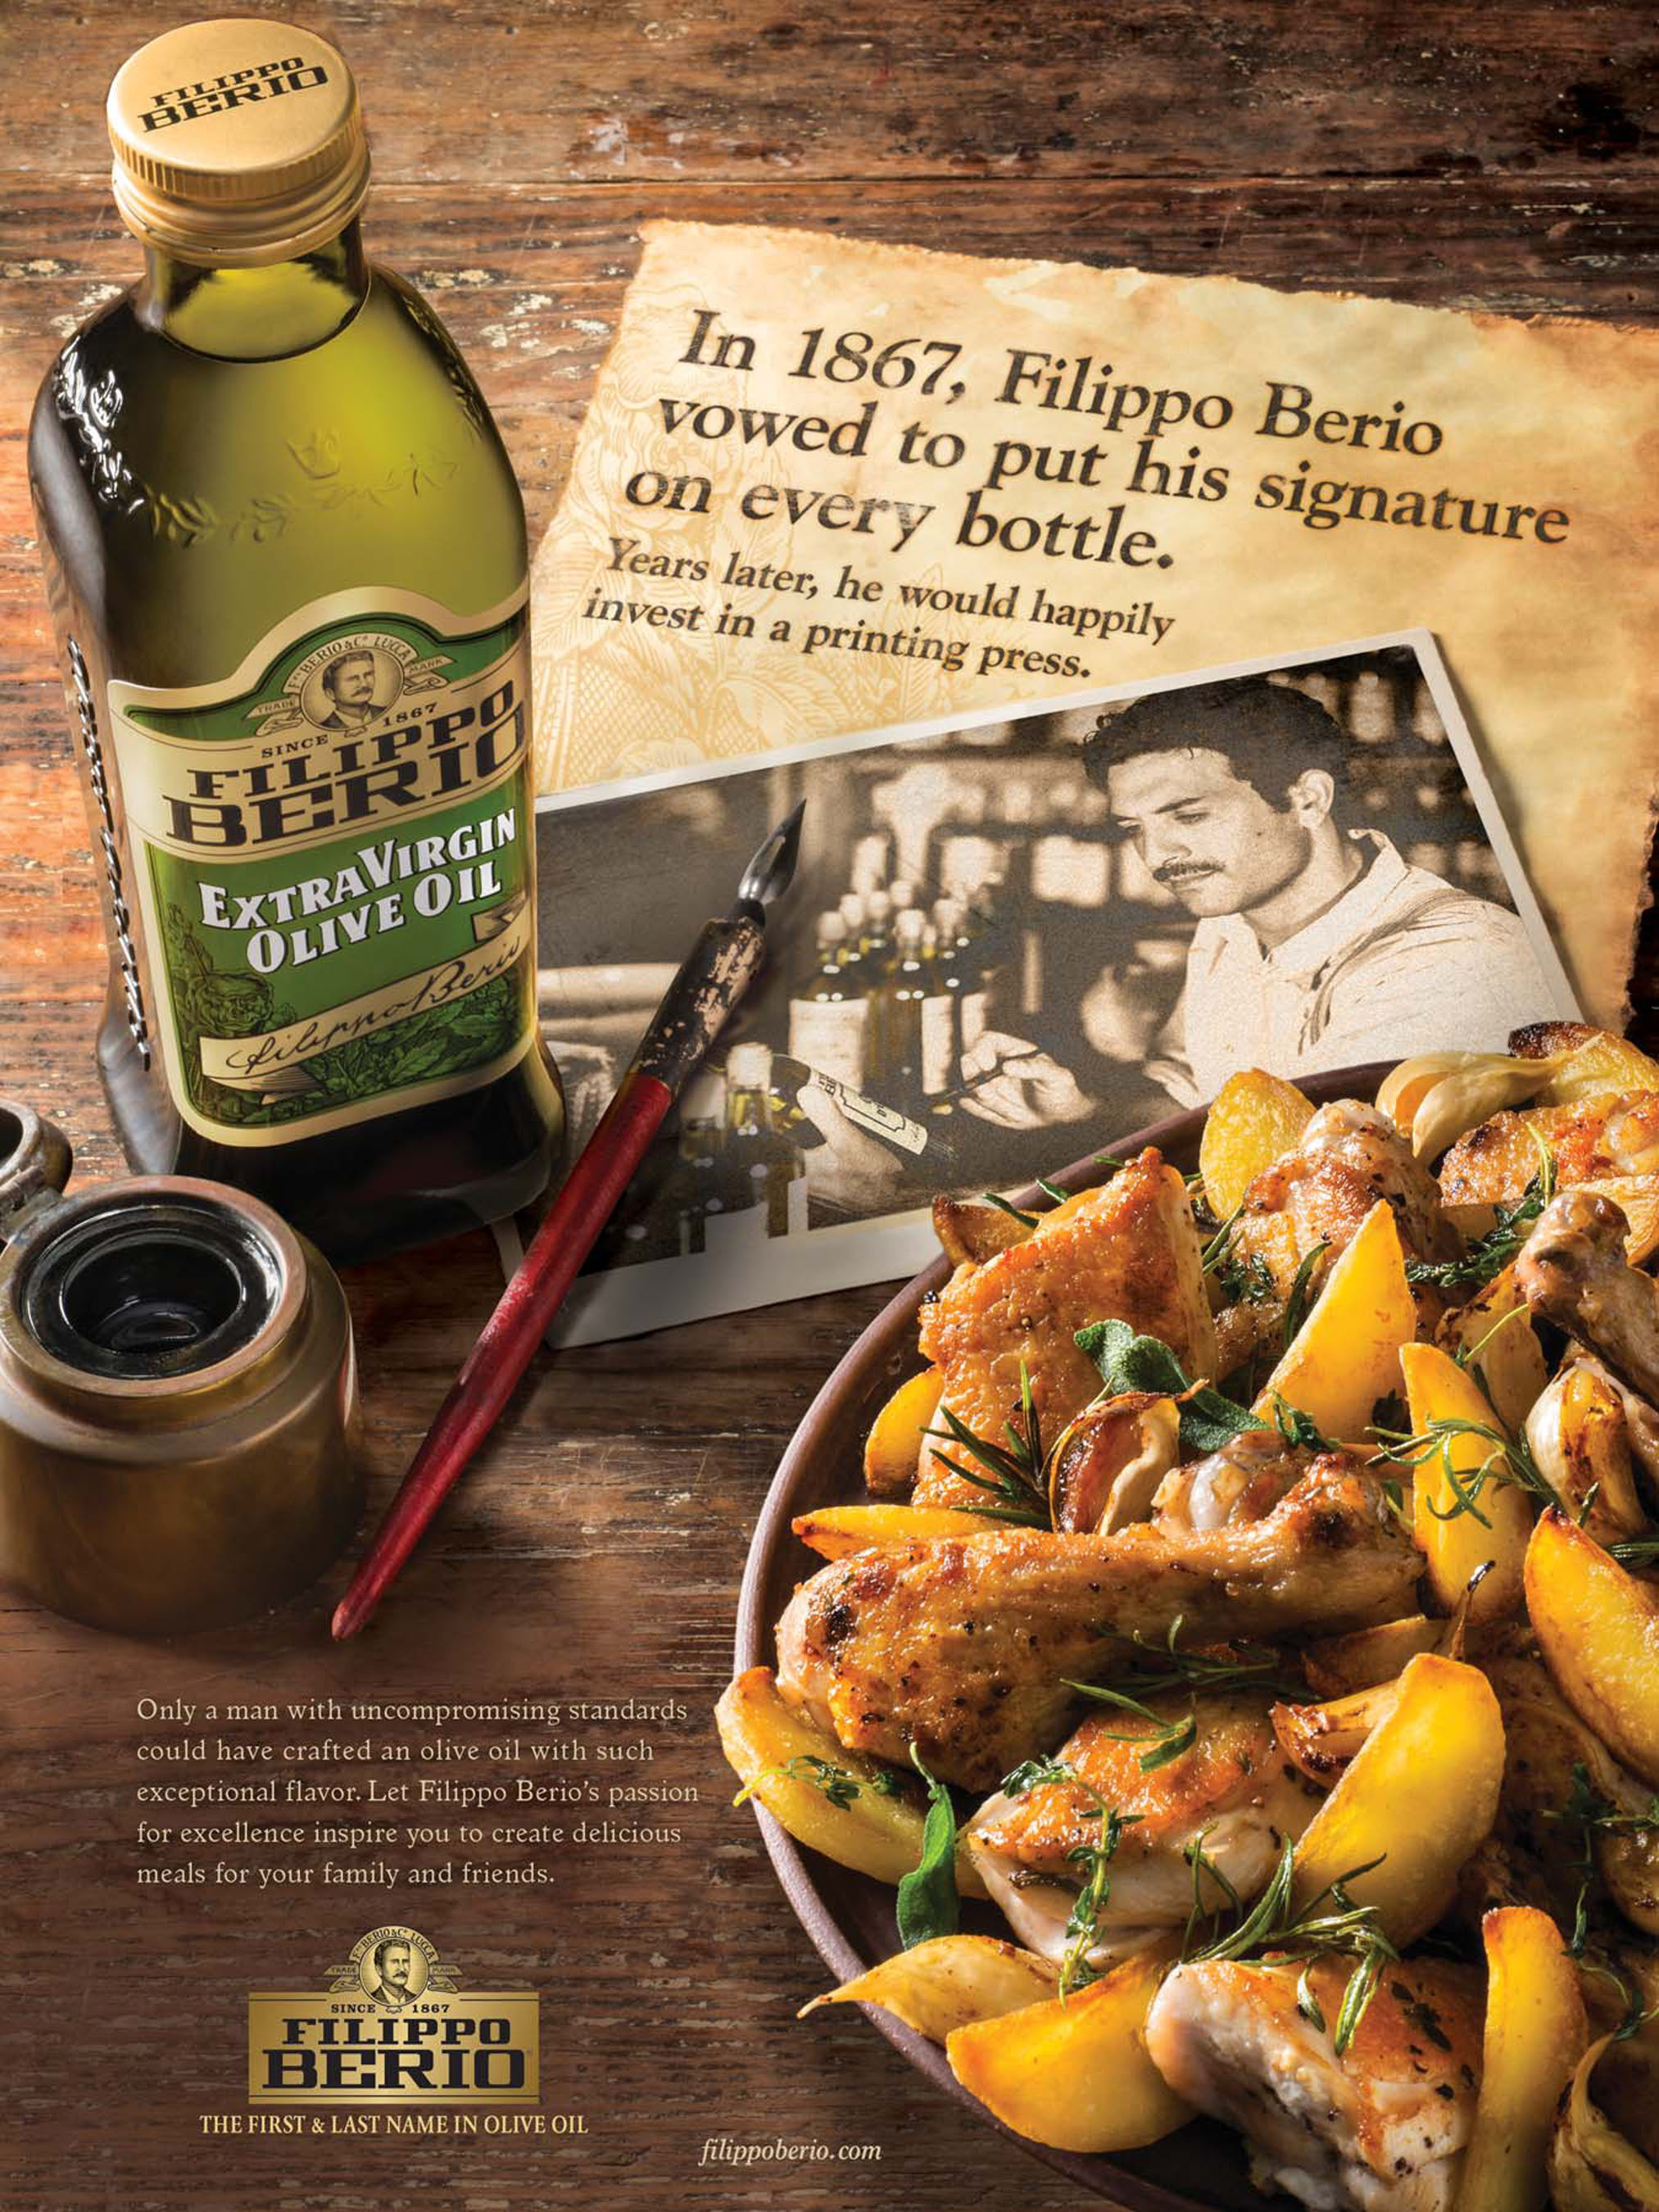 Filippo Berio Olive Oil Launches Largest National Advertising Campaign in 150-Year History